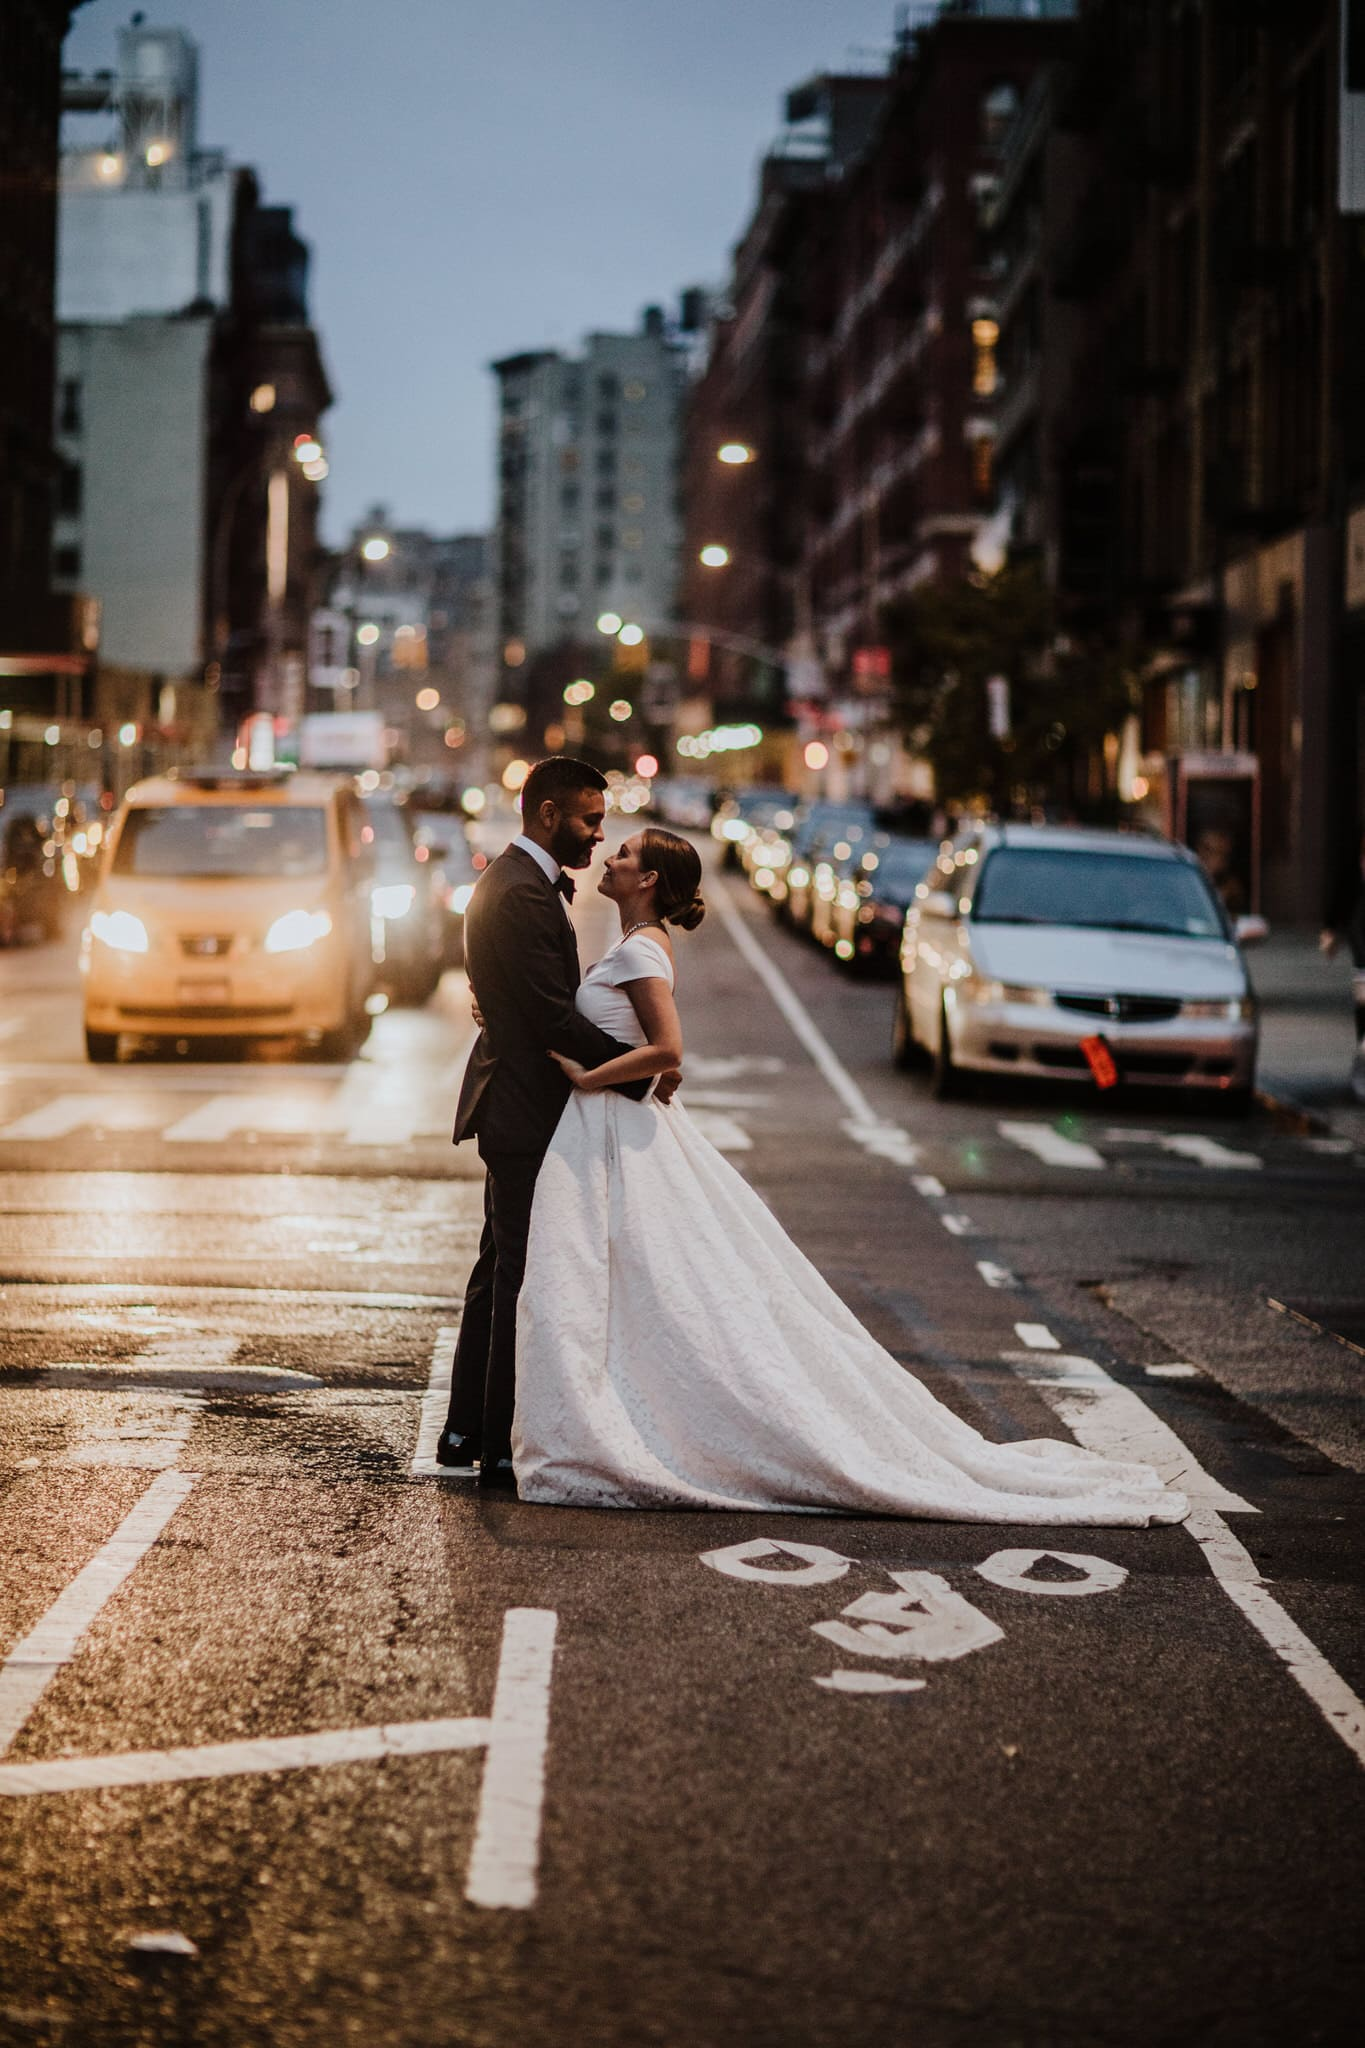 The bride and groom pose in the streets of New York at dusk. Wedding Photographer Brent Calis.